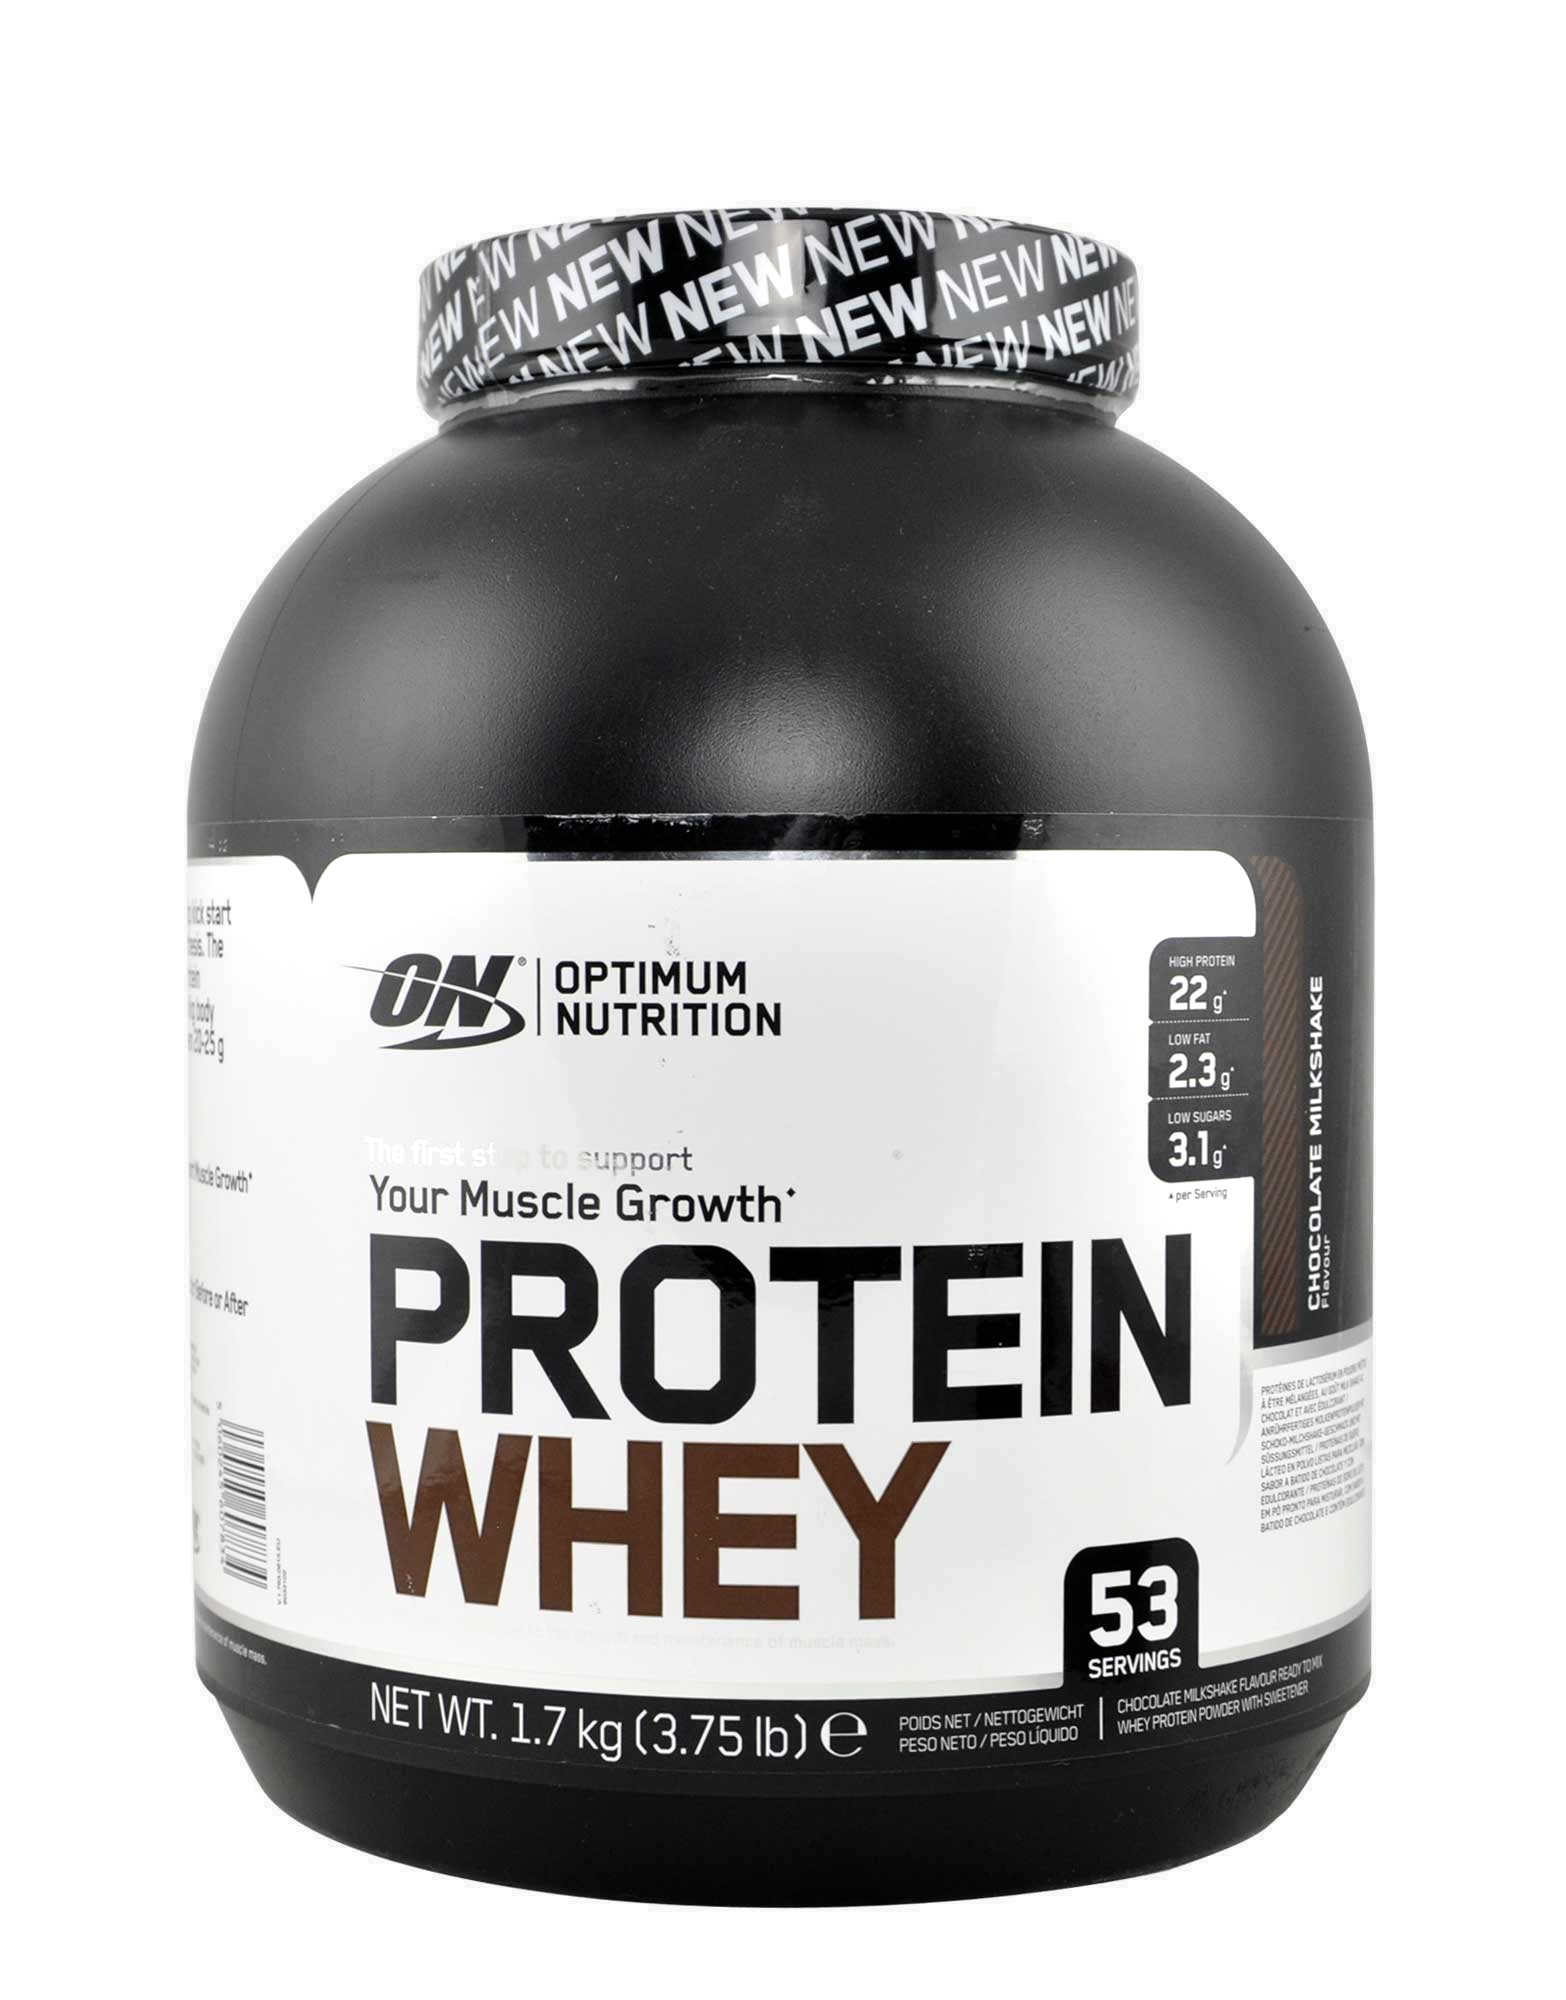 On whey protein nutrition